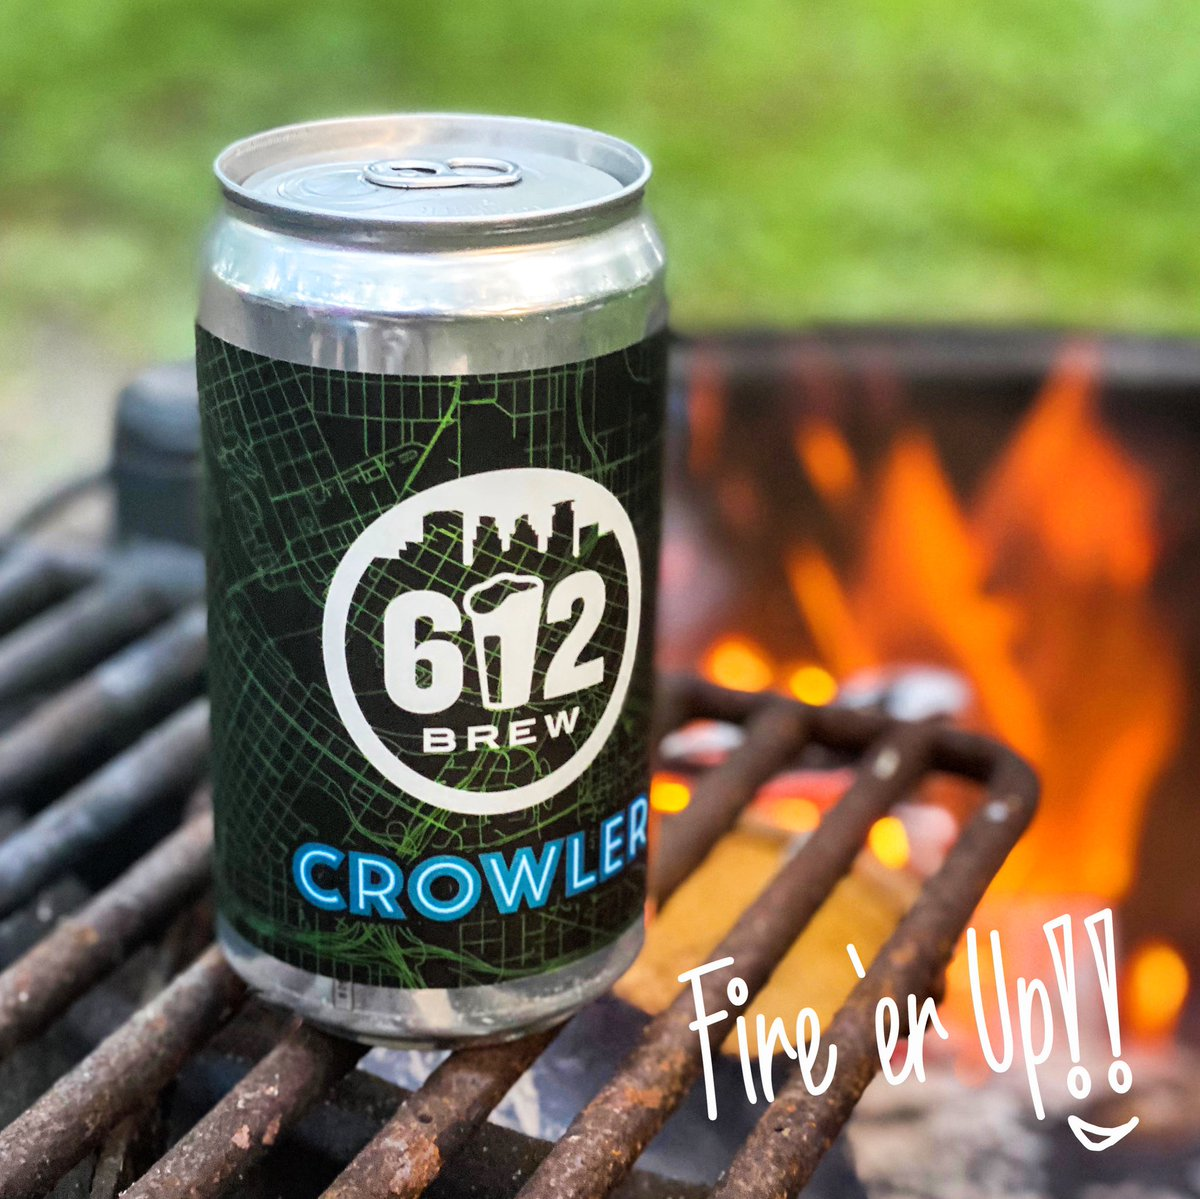 Honey, fire up the grill, I grabbed me some crowlers and we're havin' a BBQ! We have our full selection of tap beers available for take-home, grab sum for your next backyard bonanza. #imthirstyalready https://t.co/XWNFUoglM6